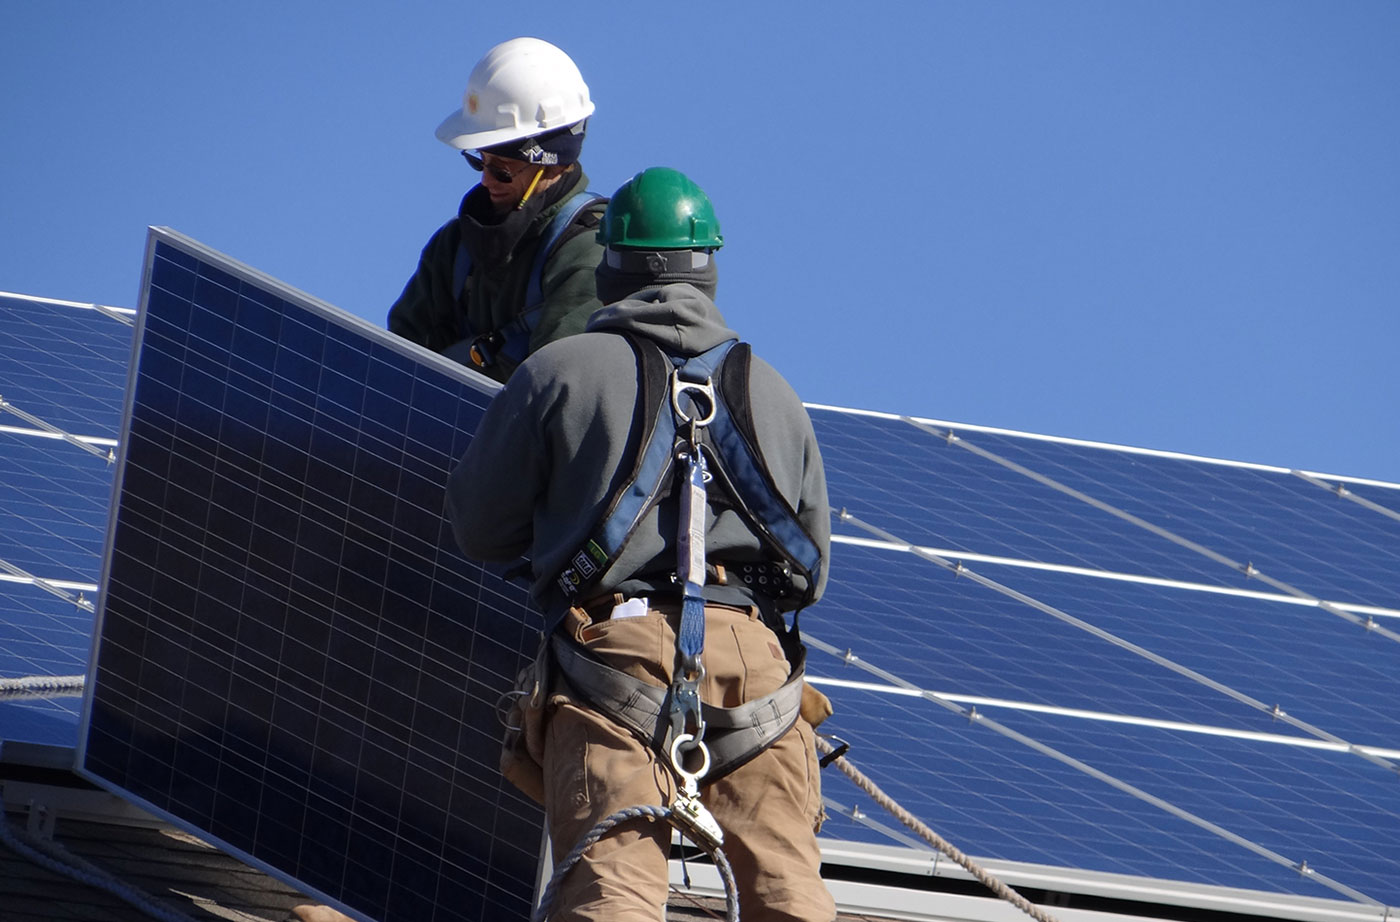 solar workers install panels on roof in Maine